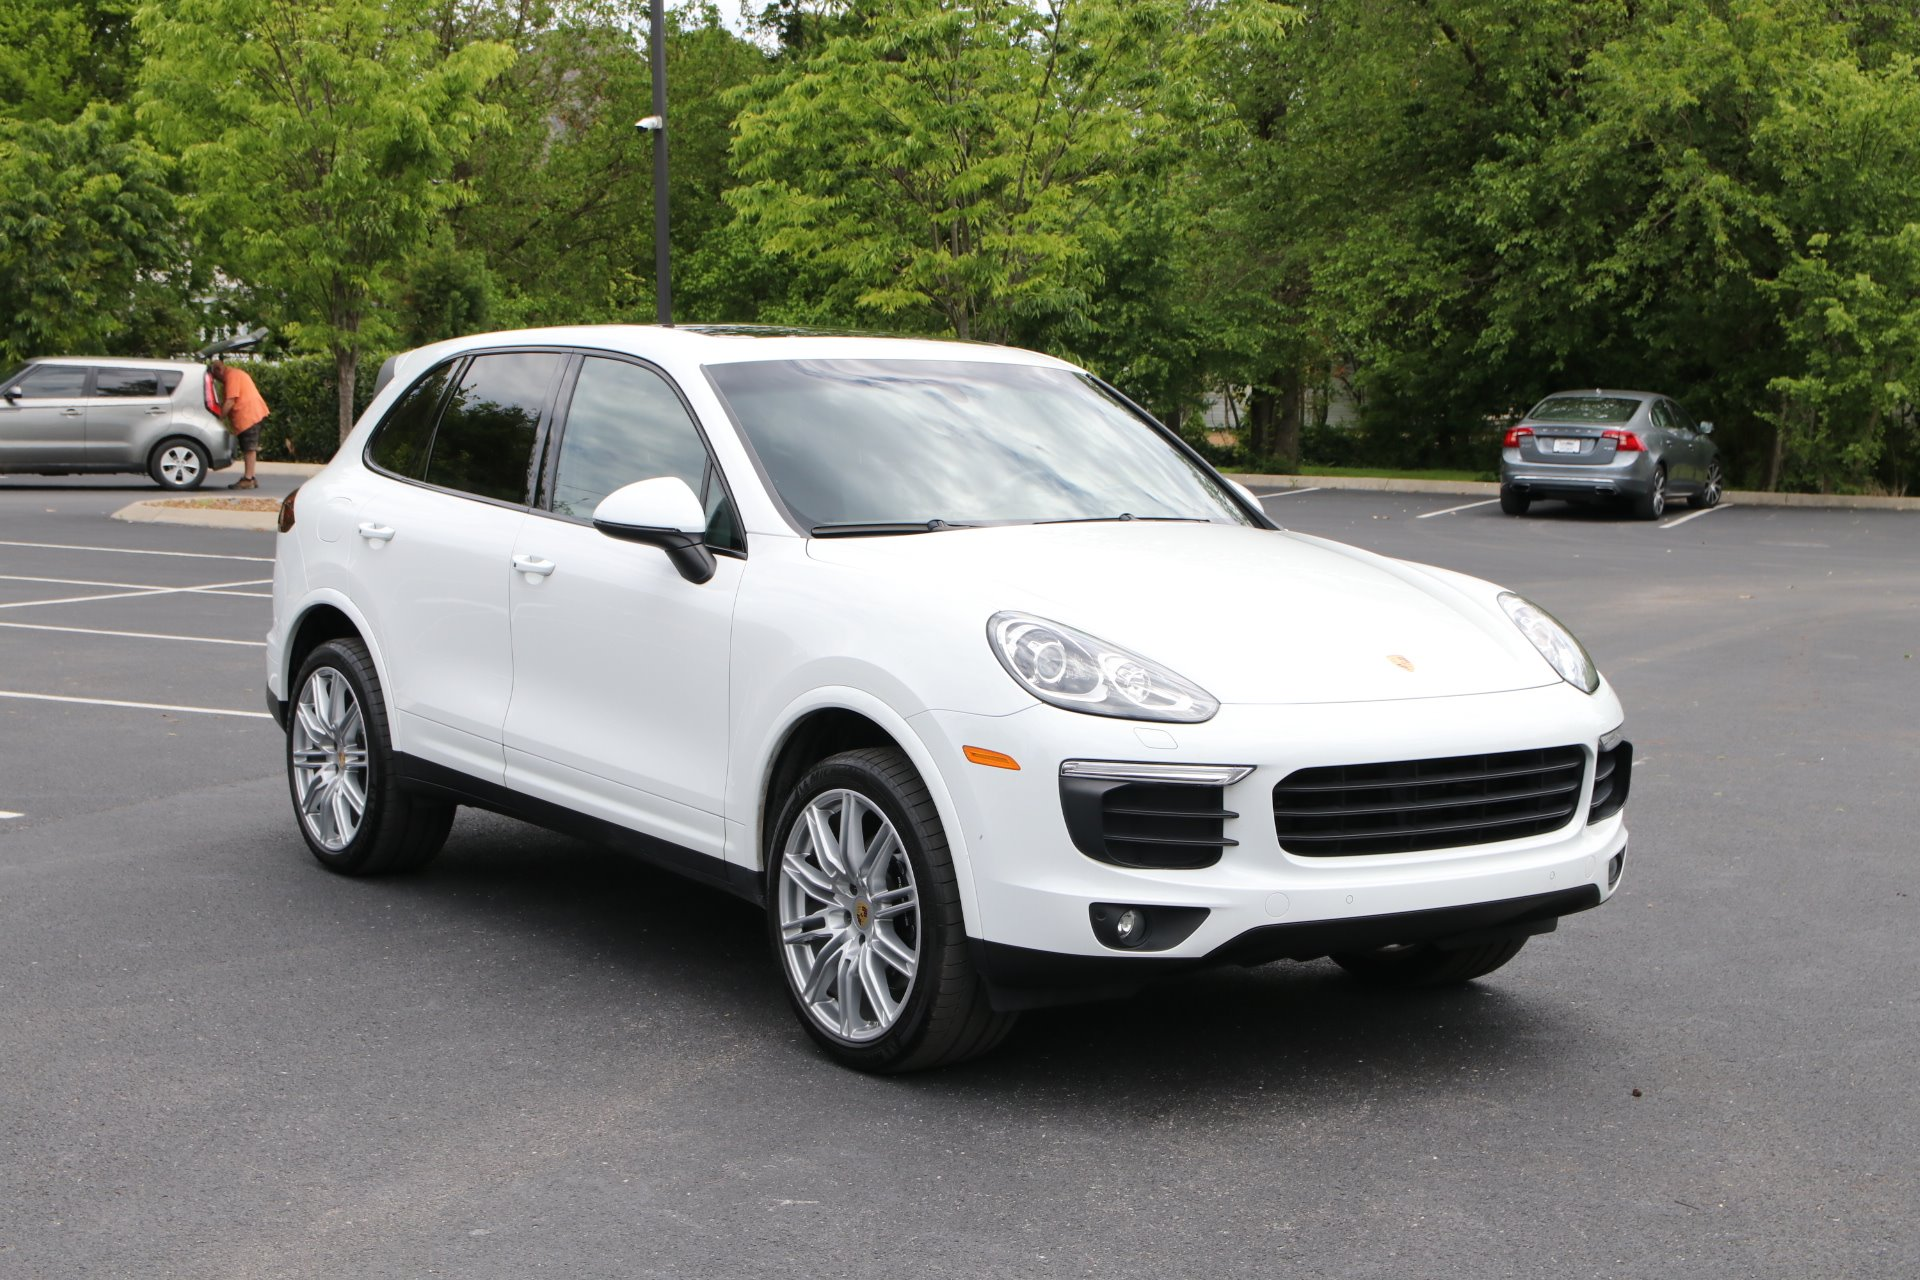 Used 2018 Porsche CAYENNE PLATINUM Awd W/nav BASE for sale Sold at Auto Collection in Murfreesboro TN 37130 1